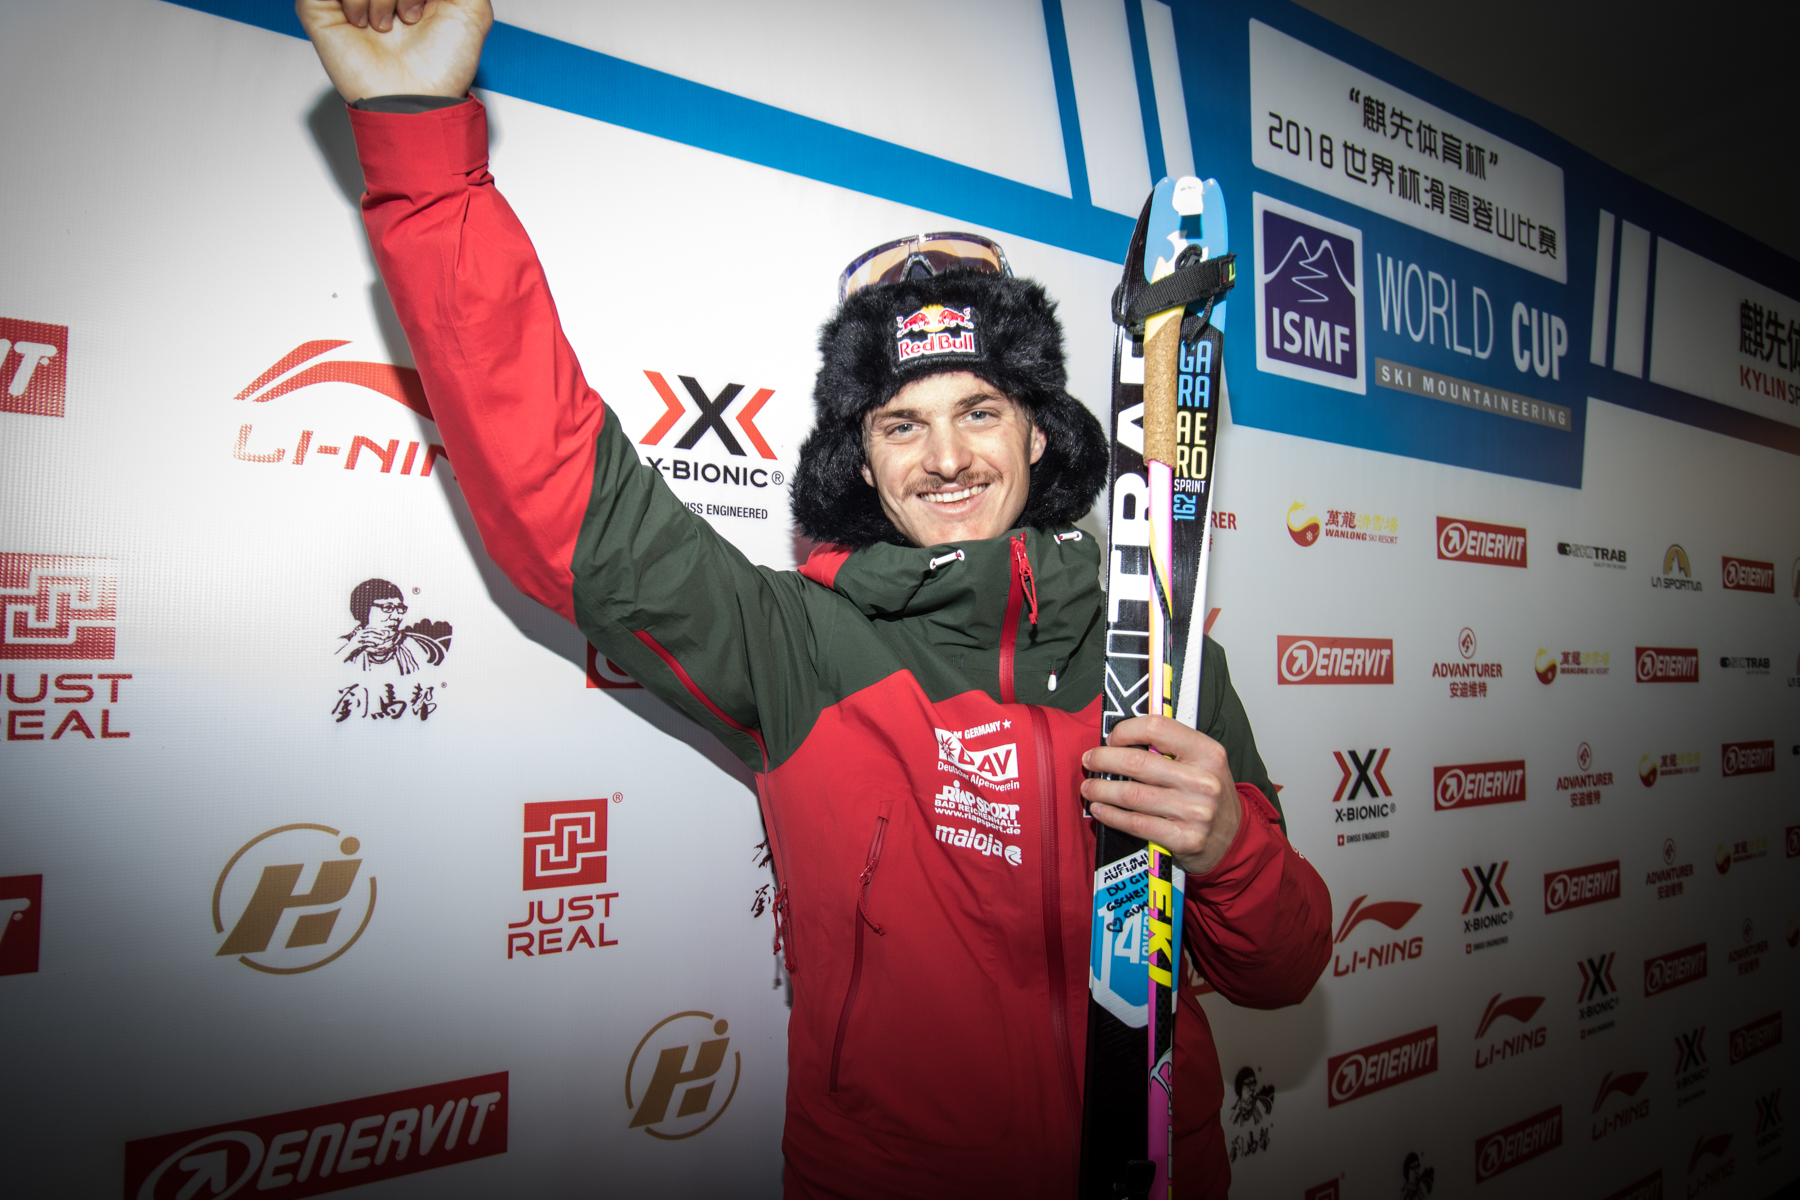 ISMF WANLONG VK: Toni Palzer pushes and finds the first gold medal!